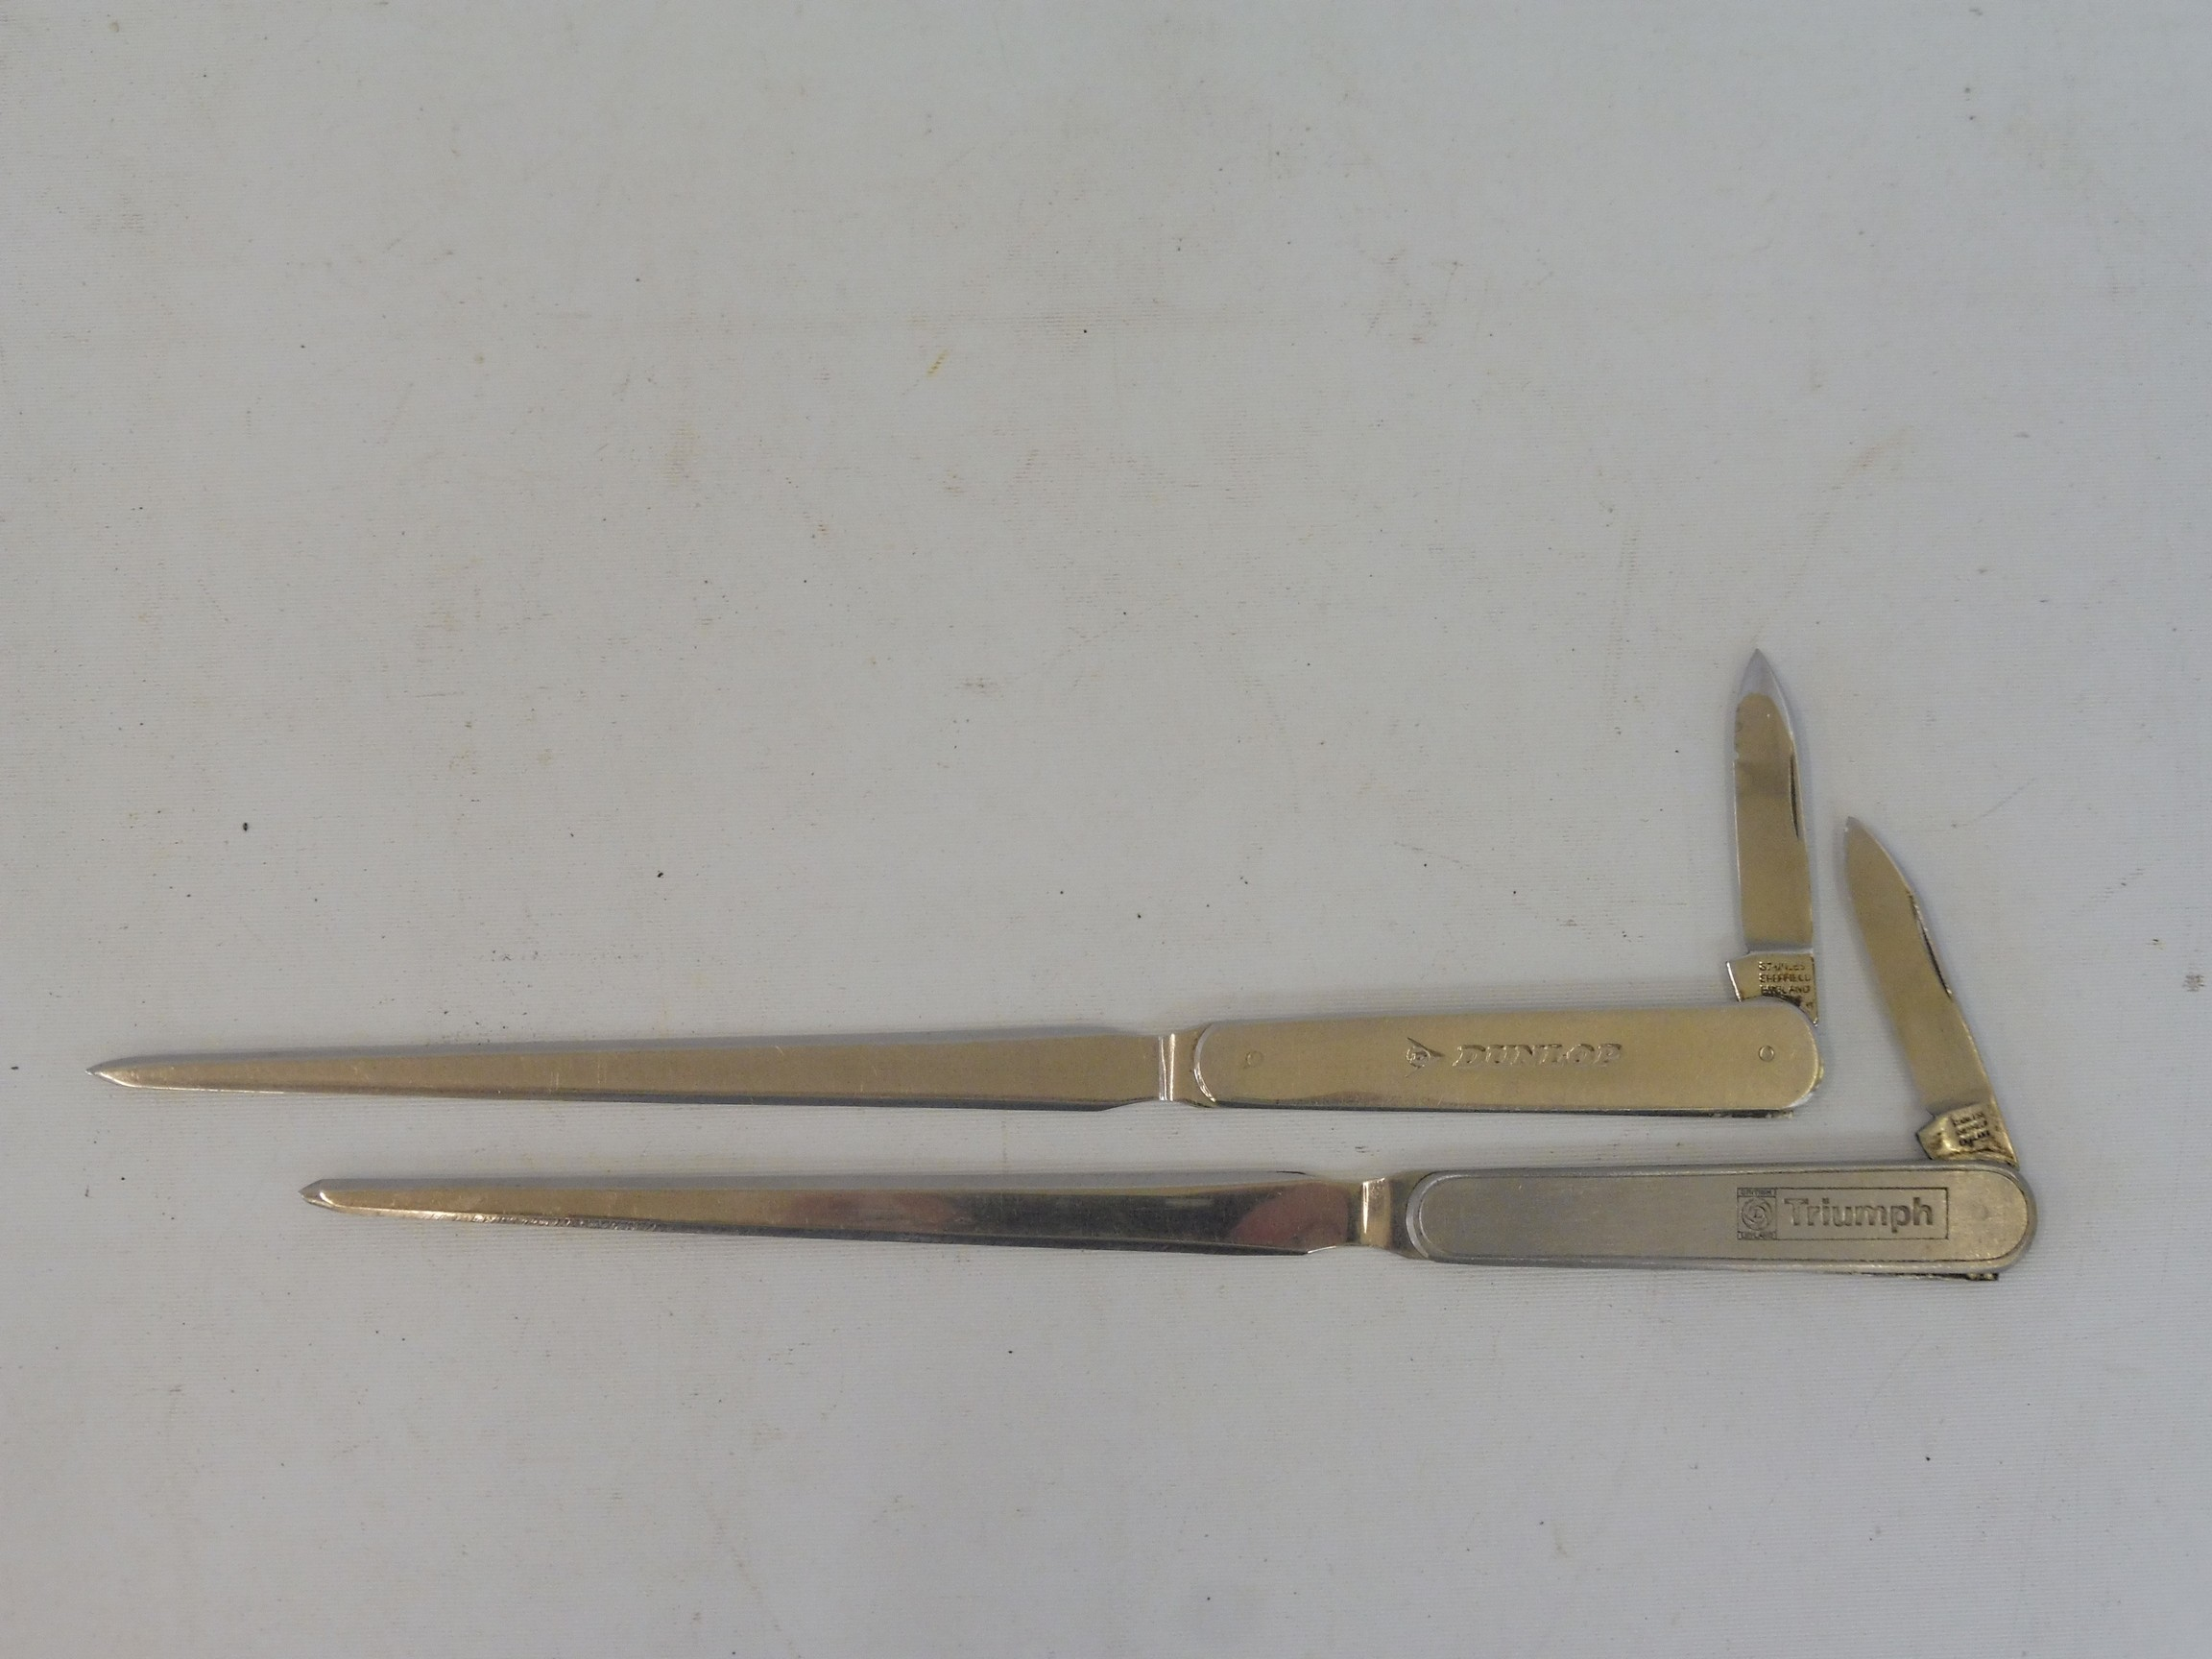 Two letter openers, one advertising Dunlop, the other Triumph (British Leyland).